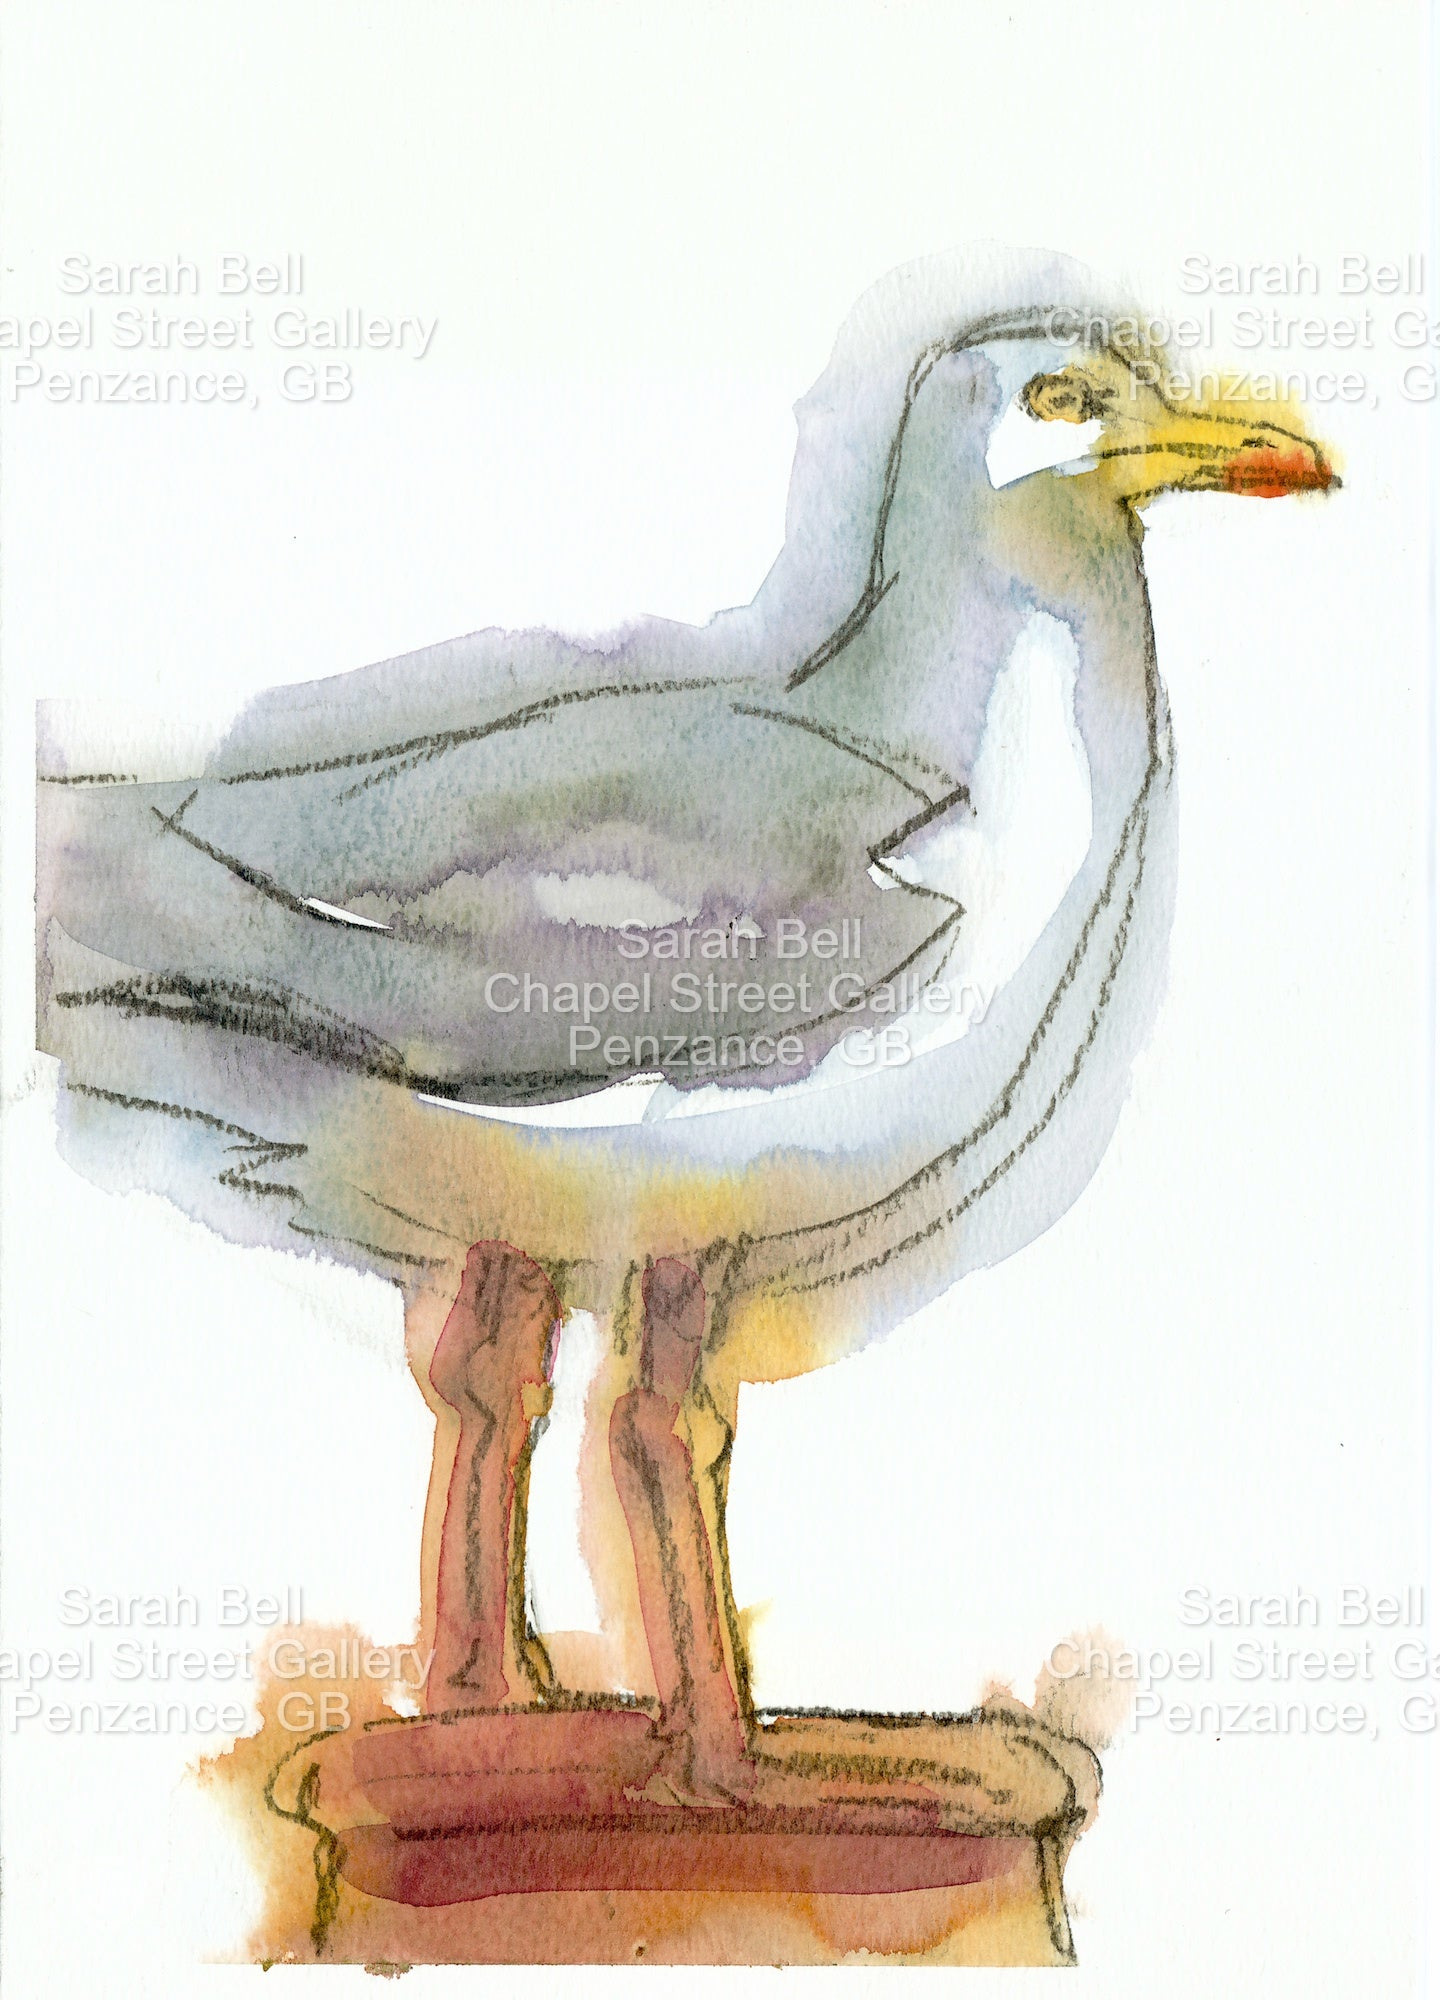 "Herring gull 1"" by Sarah Bell Blank Greeting Card"